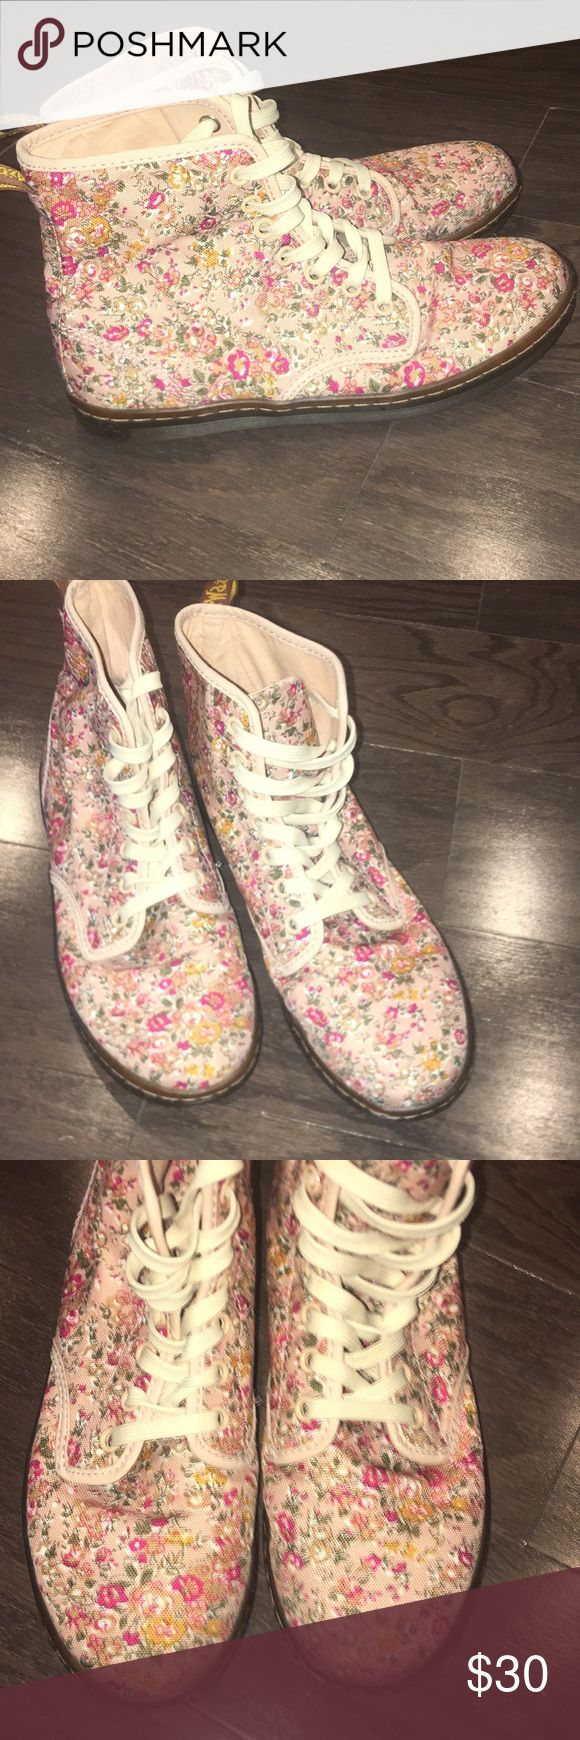 Doc Marten's Air Wair floral design Super comfy shoes!! Great for walking- very lightweight In very good condition and is a durable shoe with air cushion soles The canvas is decorated with red, yellow, and green flowers and has creme colored laces Dr. Martens Shoes Combat & Moto Boots